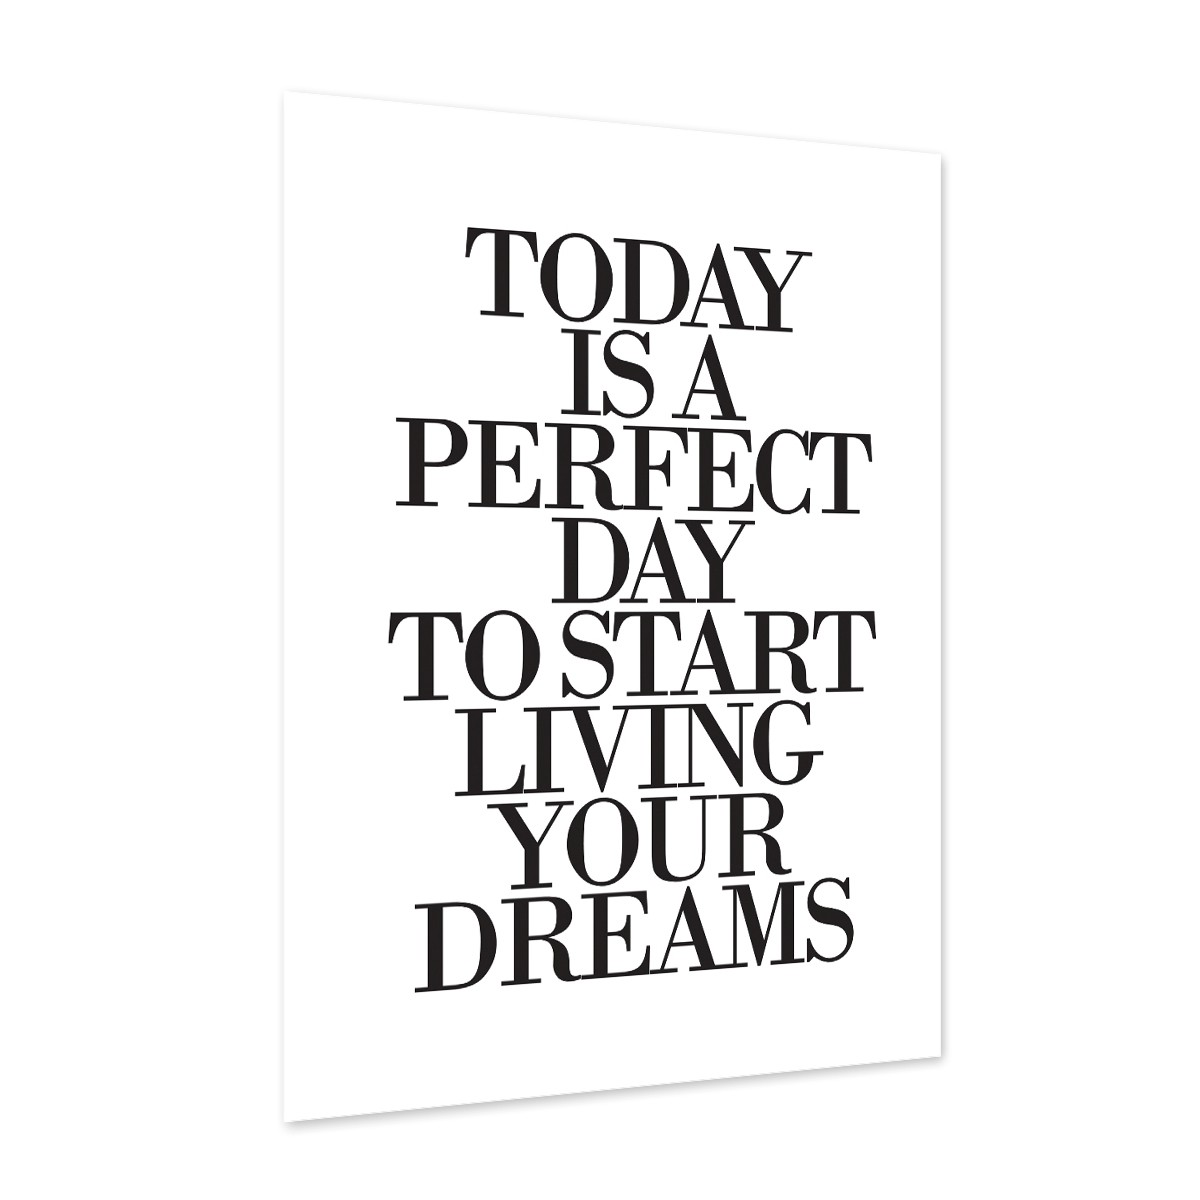 design poster 39 today is a perfect day 39 30x40 cm schwarz weiss typographie spruch poster spr che. Black Bedroom Furniture Sets. Home Design Ideas